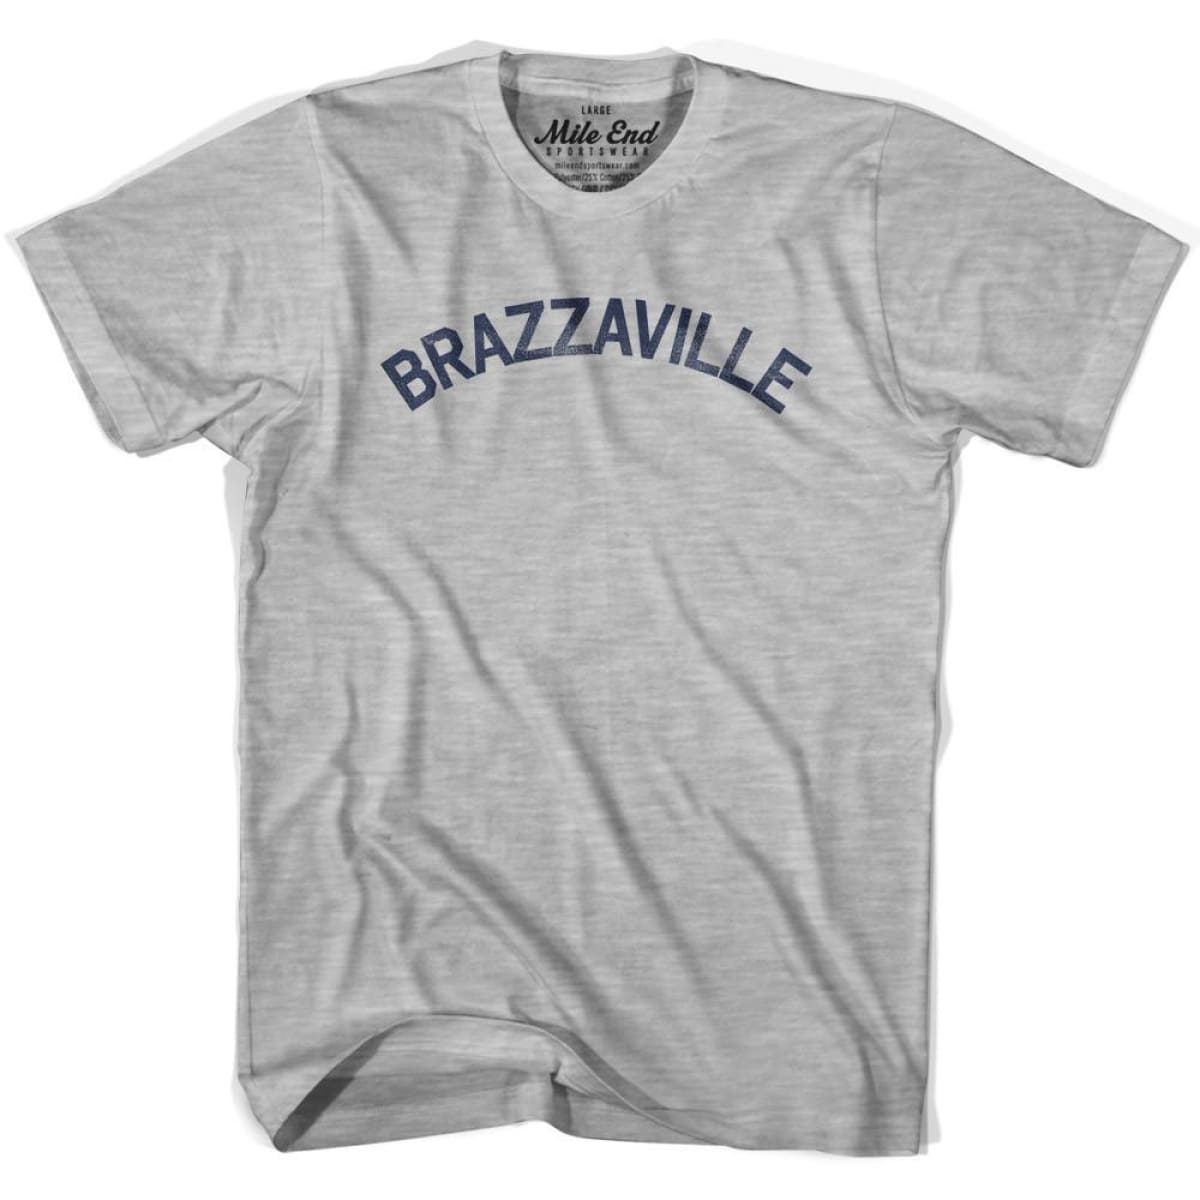 Brazzaville City Vintage T-shirt - Grey Heather / Youth X-Small - Mile End City